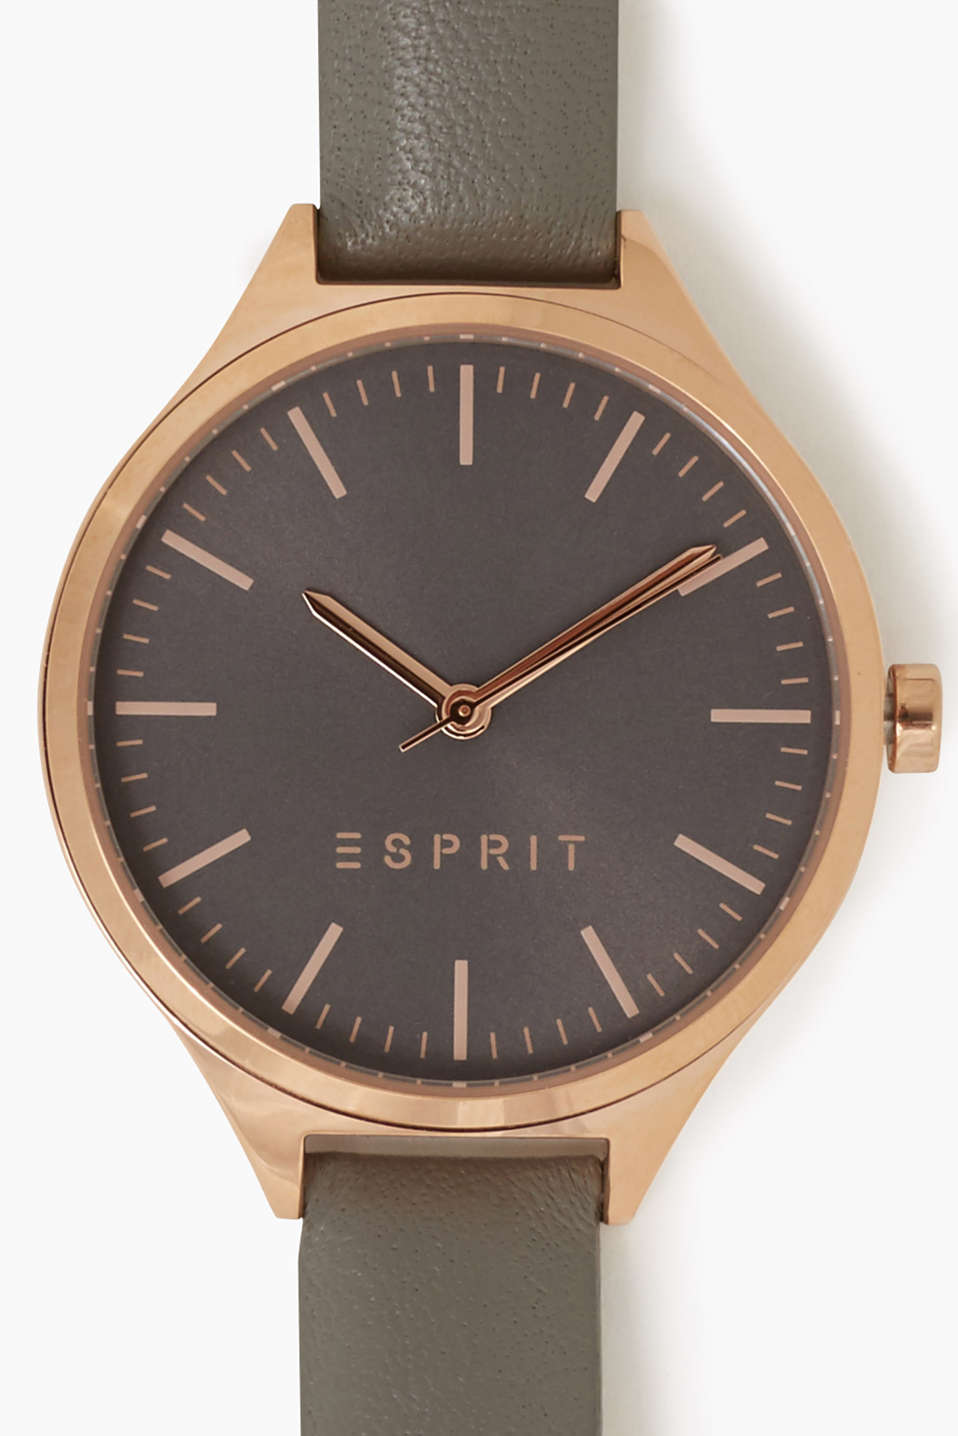 Polished stainless steel watch in a rose gold shade with a narrow leather strap, Ø approx. 34 mm